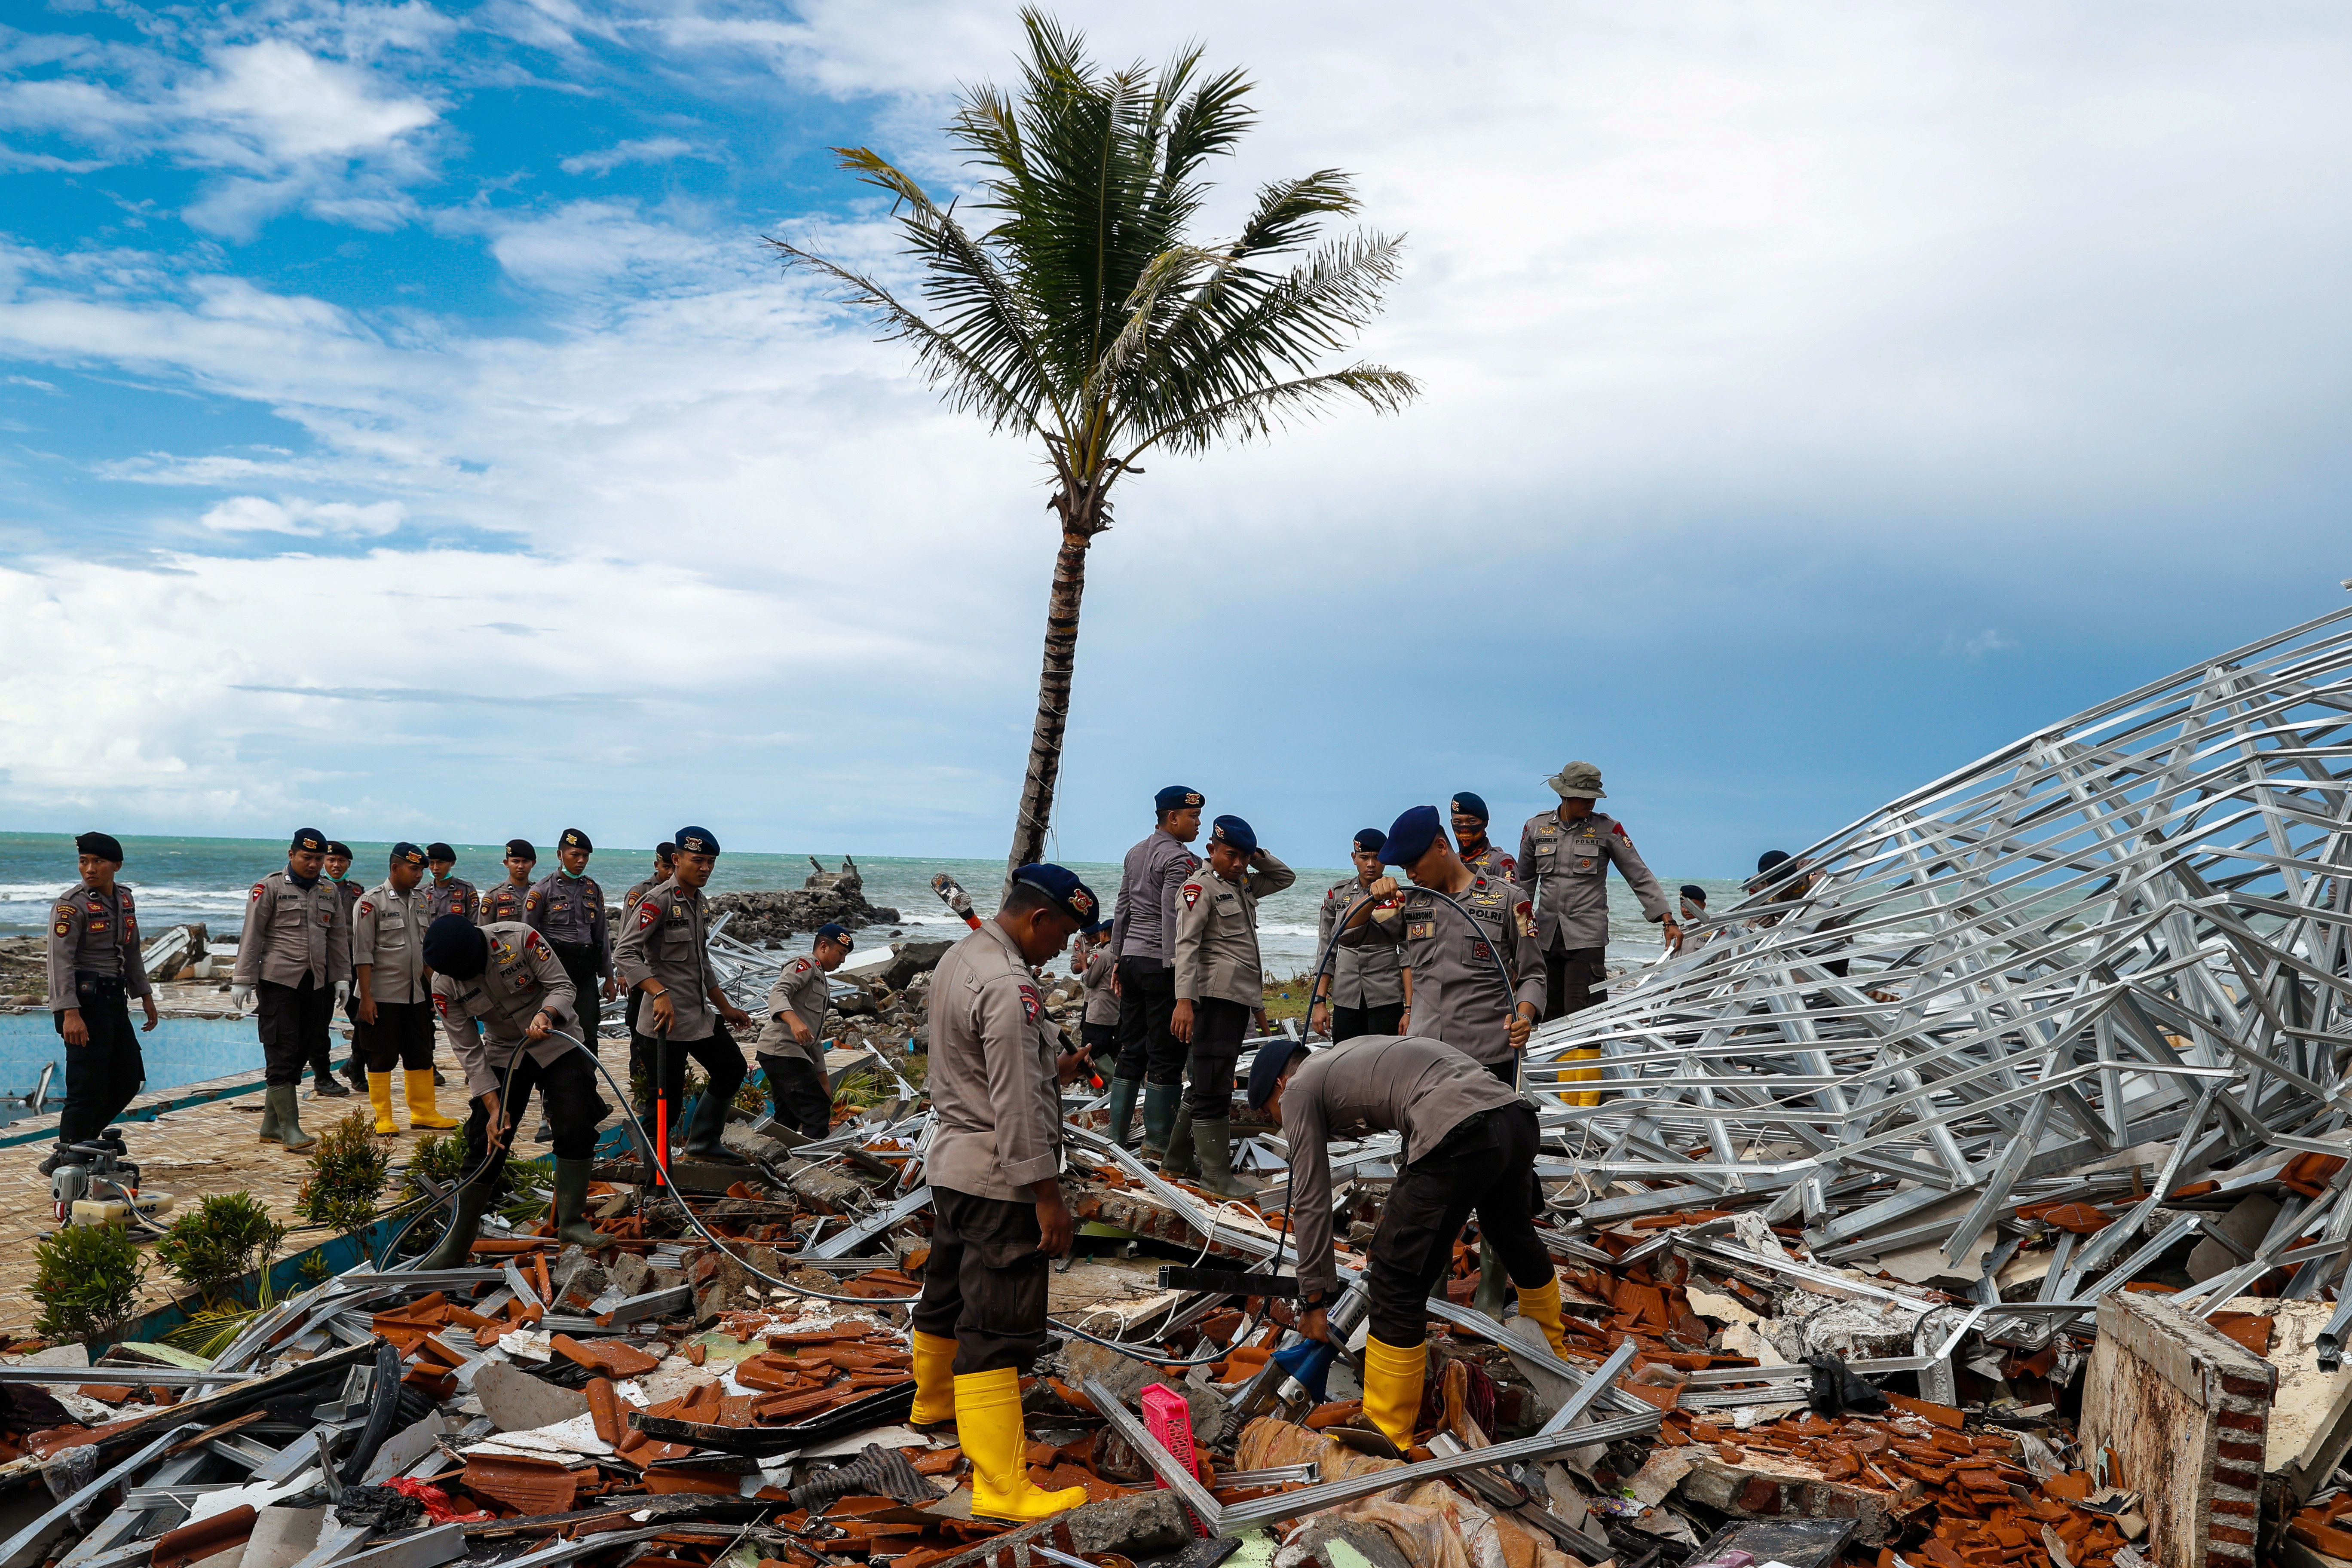 'Run, A Wave Is Coming!' - Panic And Devastation After Tsunami In